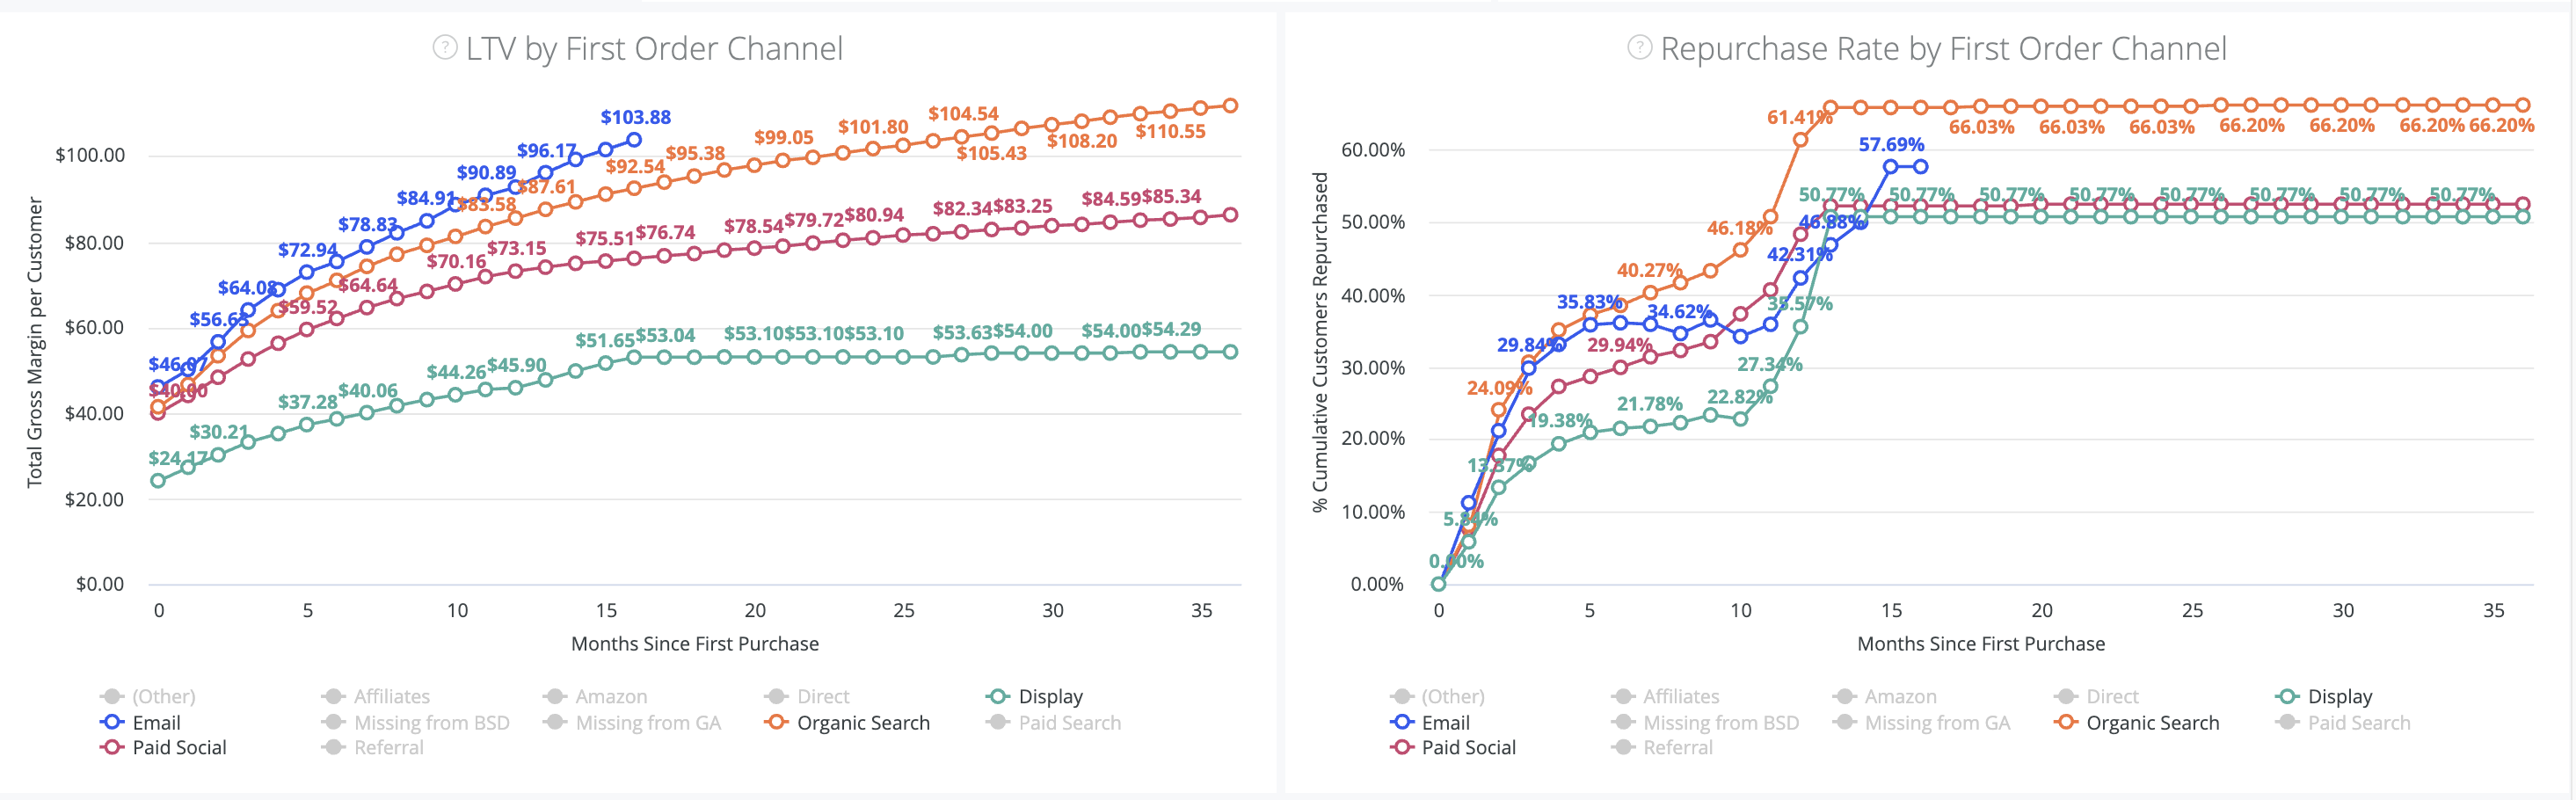 LTV, Retention Rate and RFM Dashboard - First Order